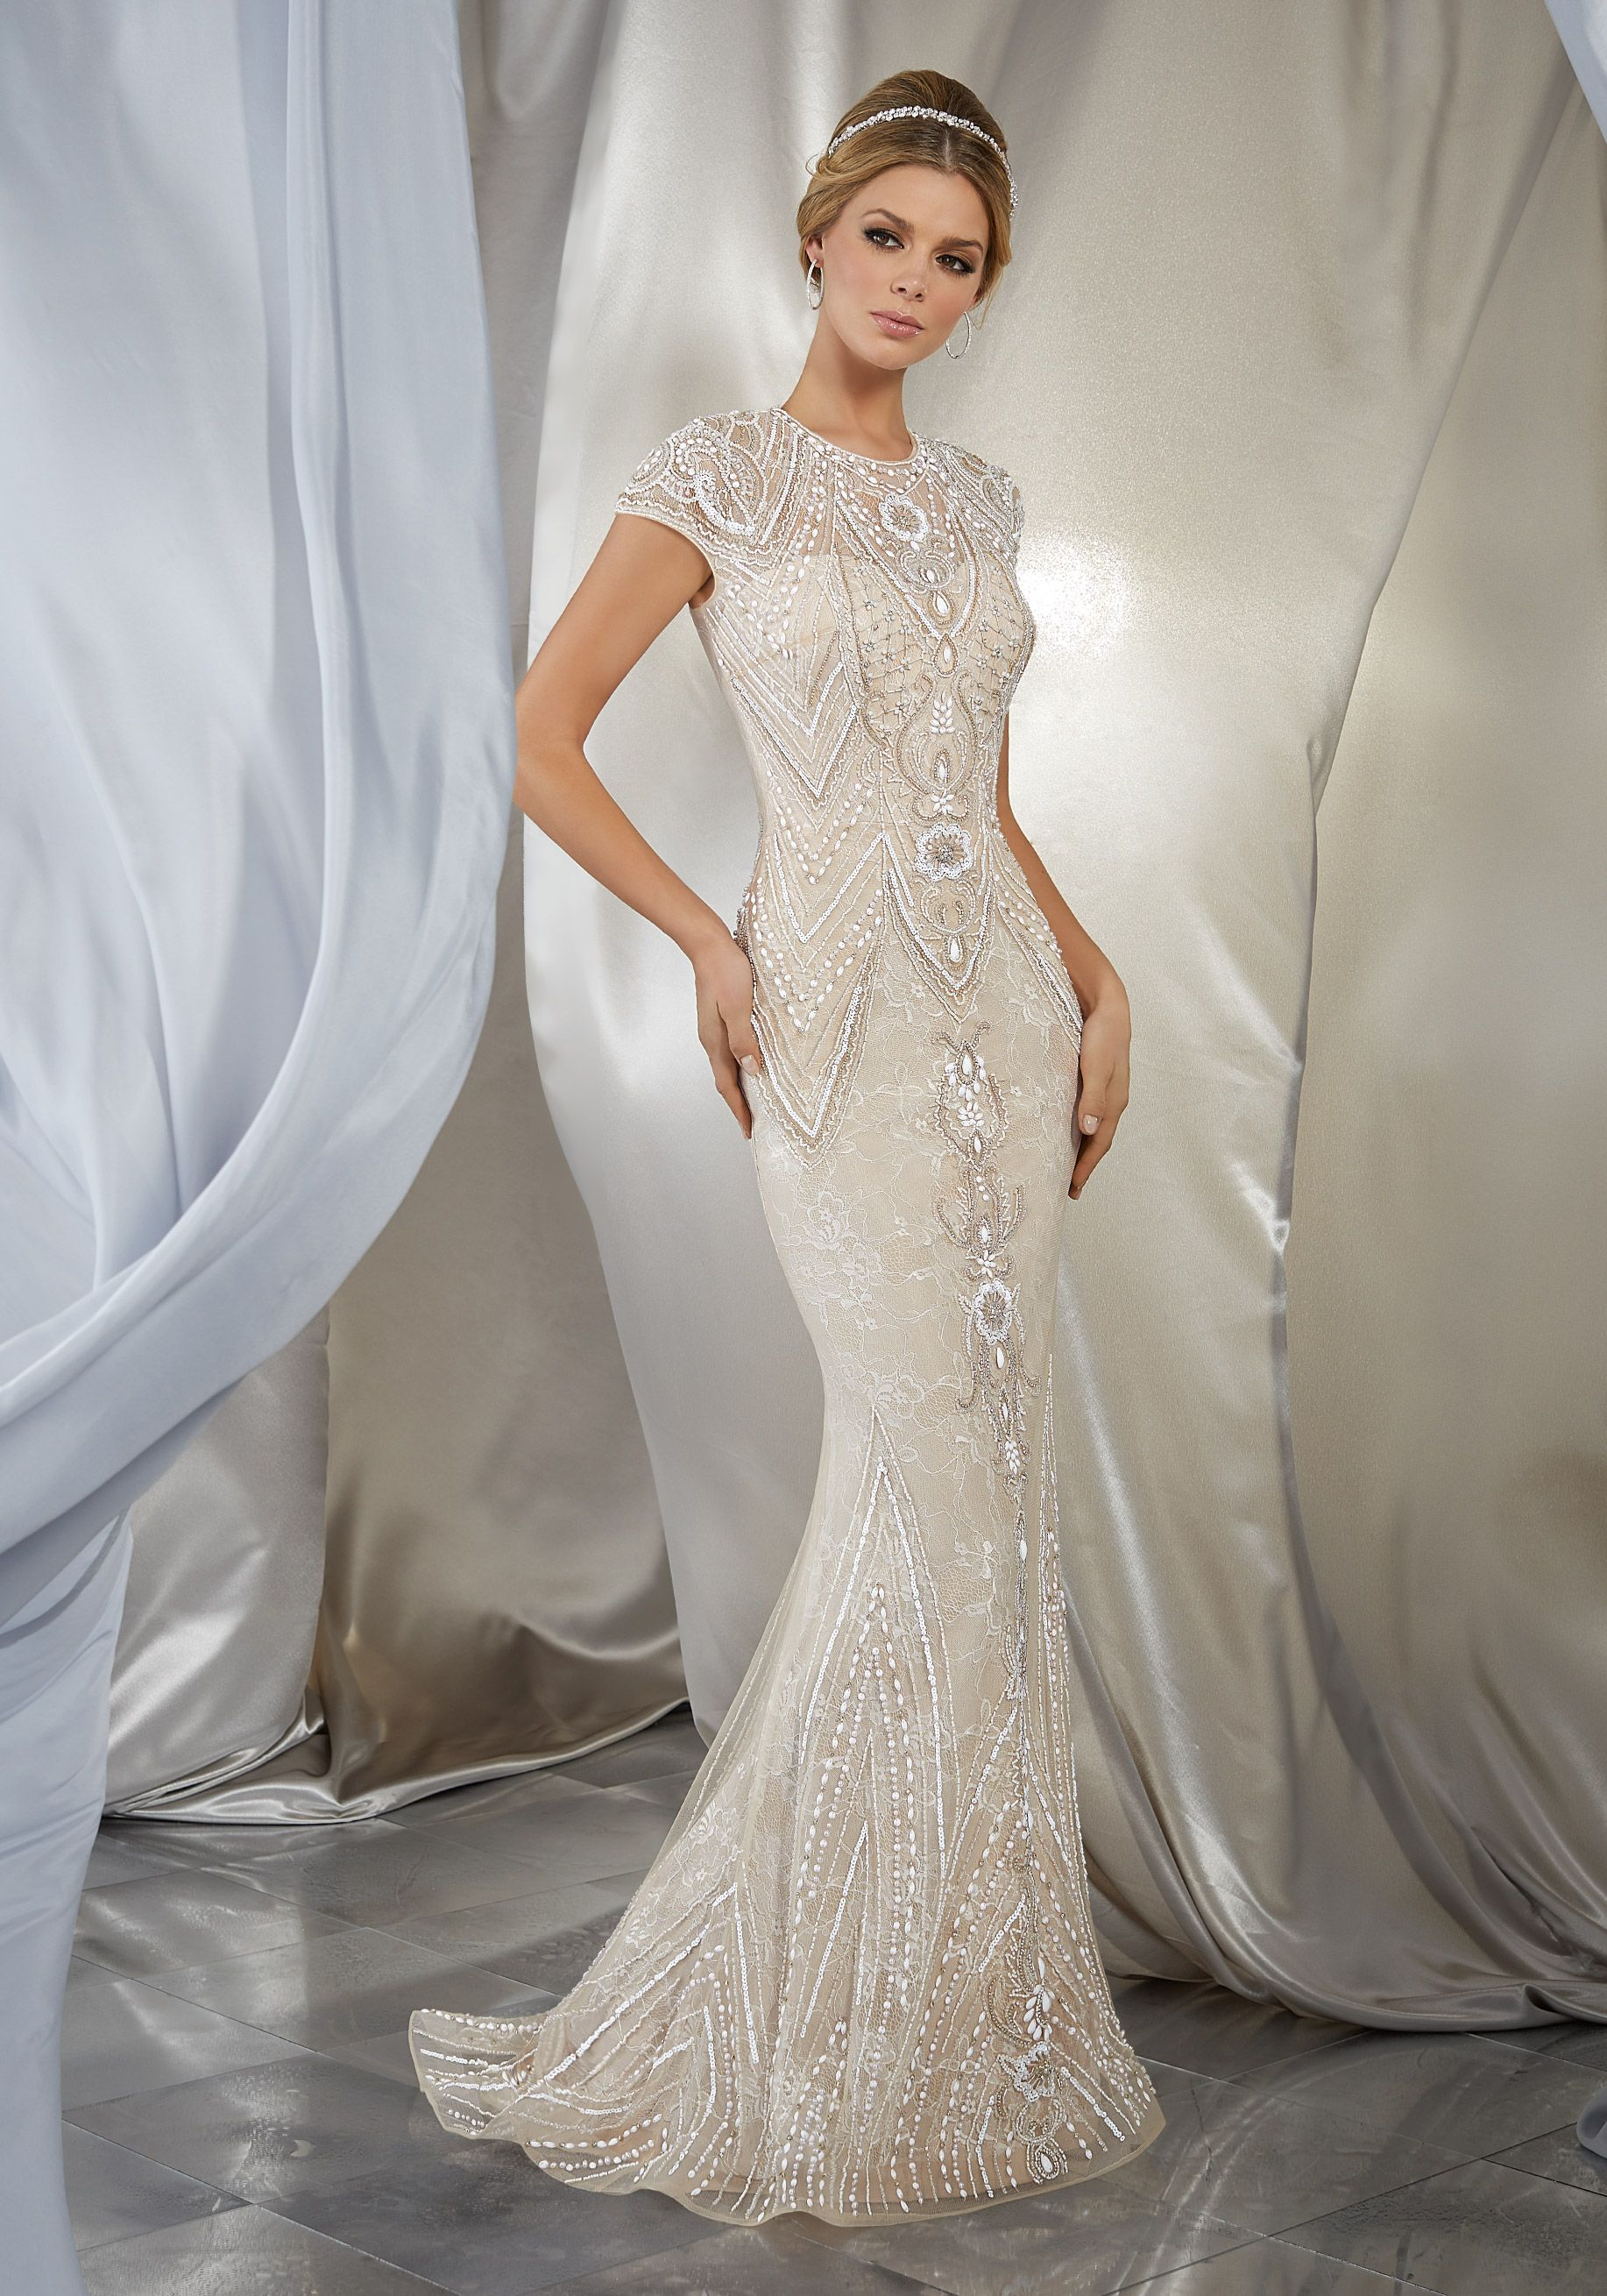 Intricate beadwork creates a glamorous look on this slim tulle gown